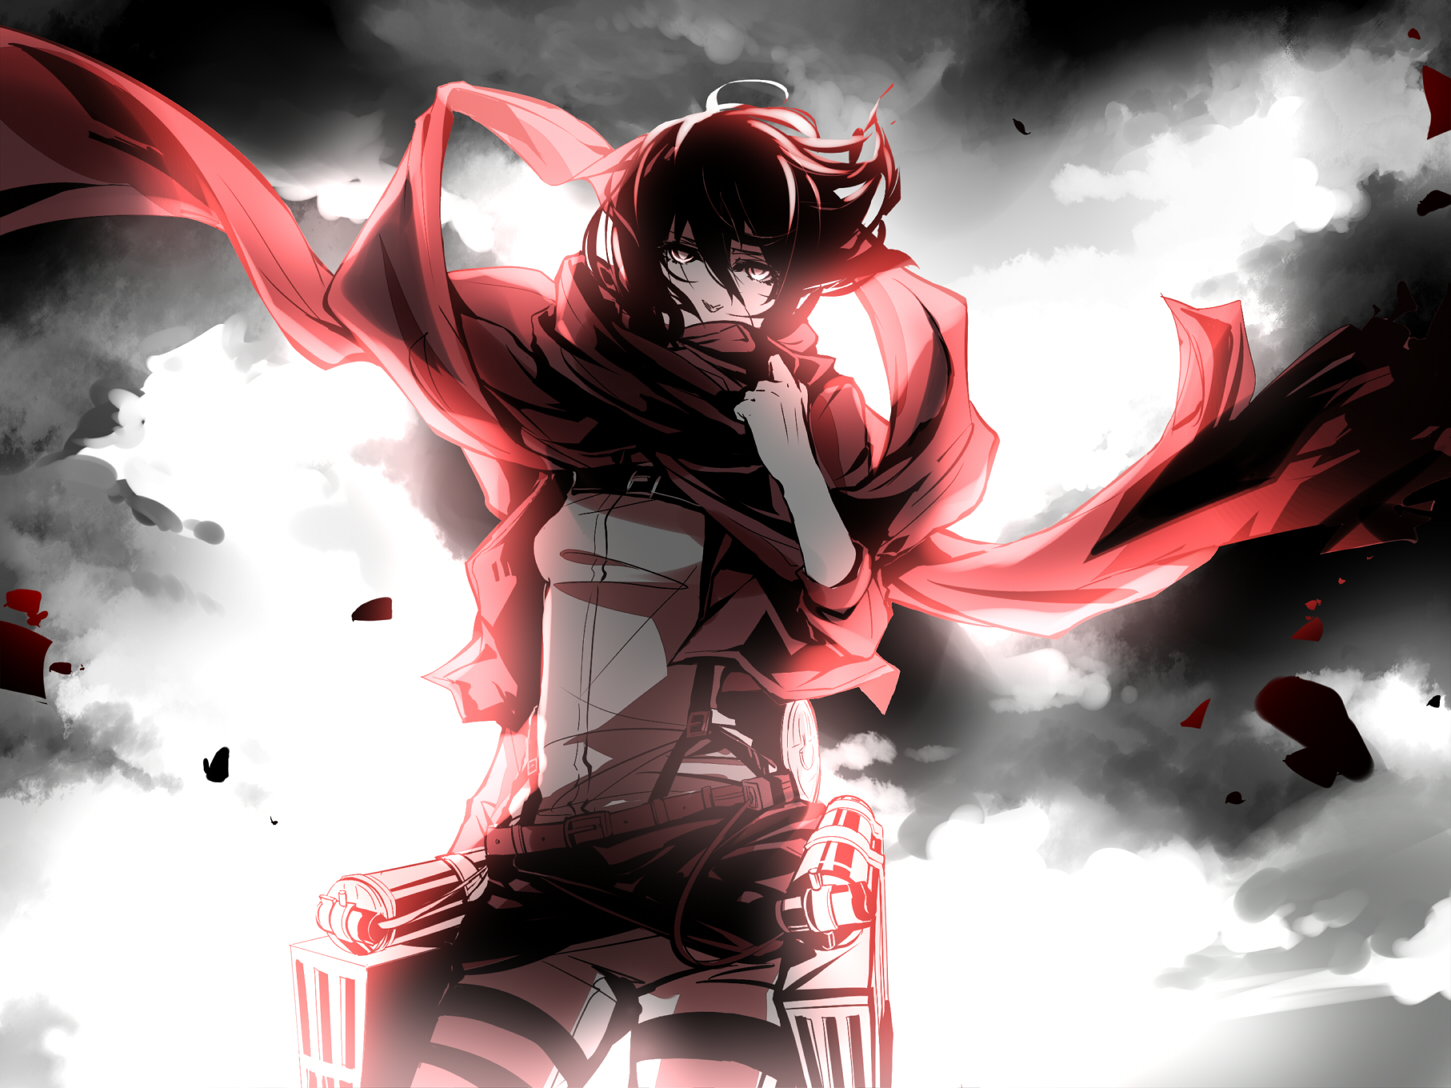 Attack On Titan Wallpaper and Background | 1451x1088 | ID ...